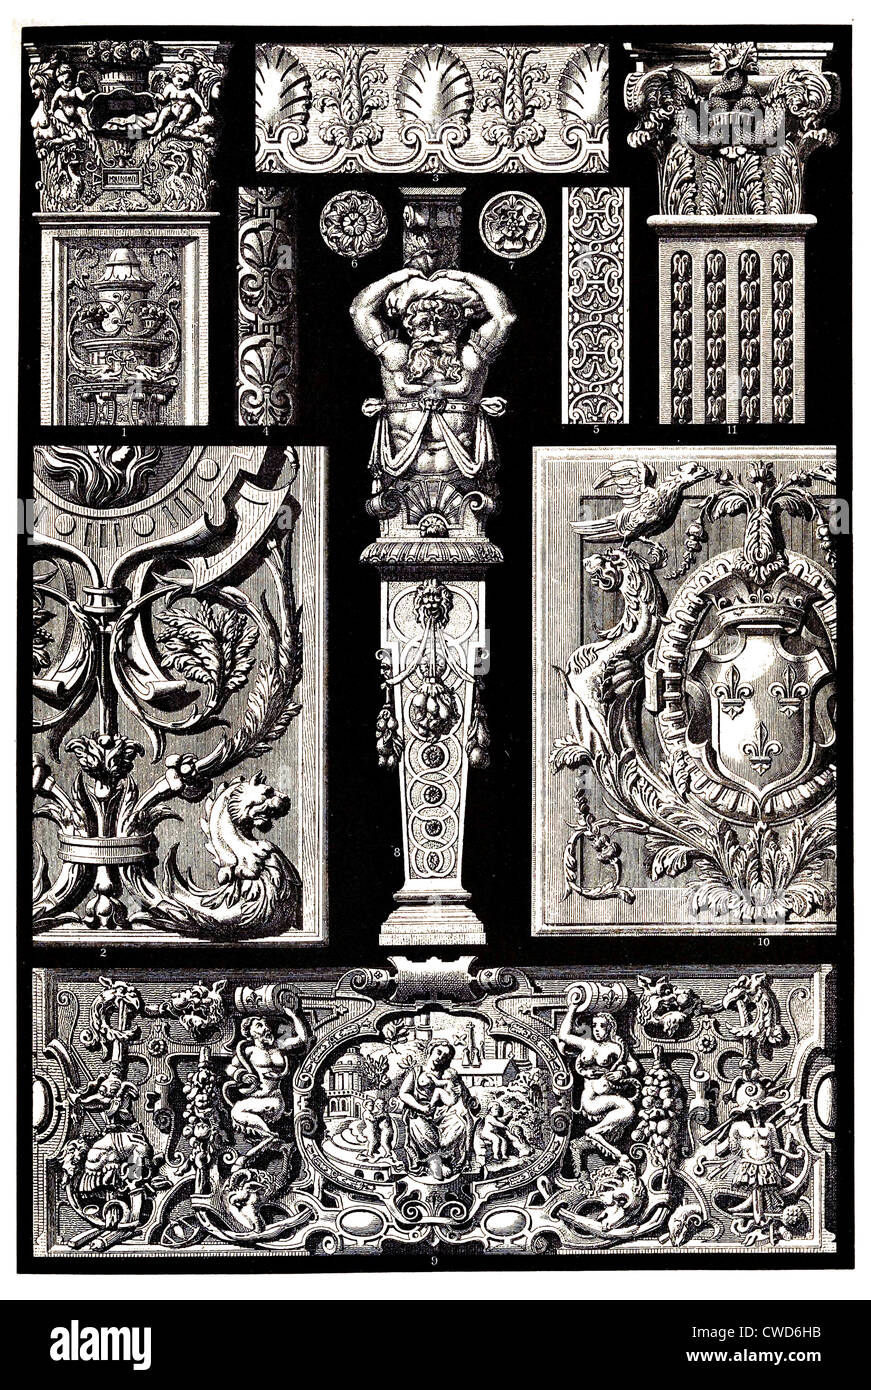 Renaissance French sculptural ornaments in stone and wood - Stock Image